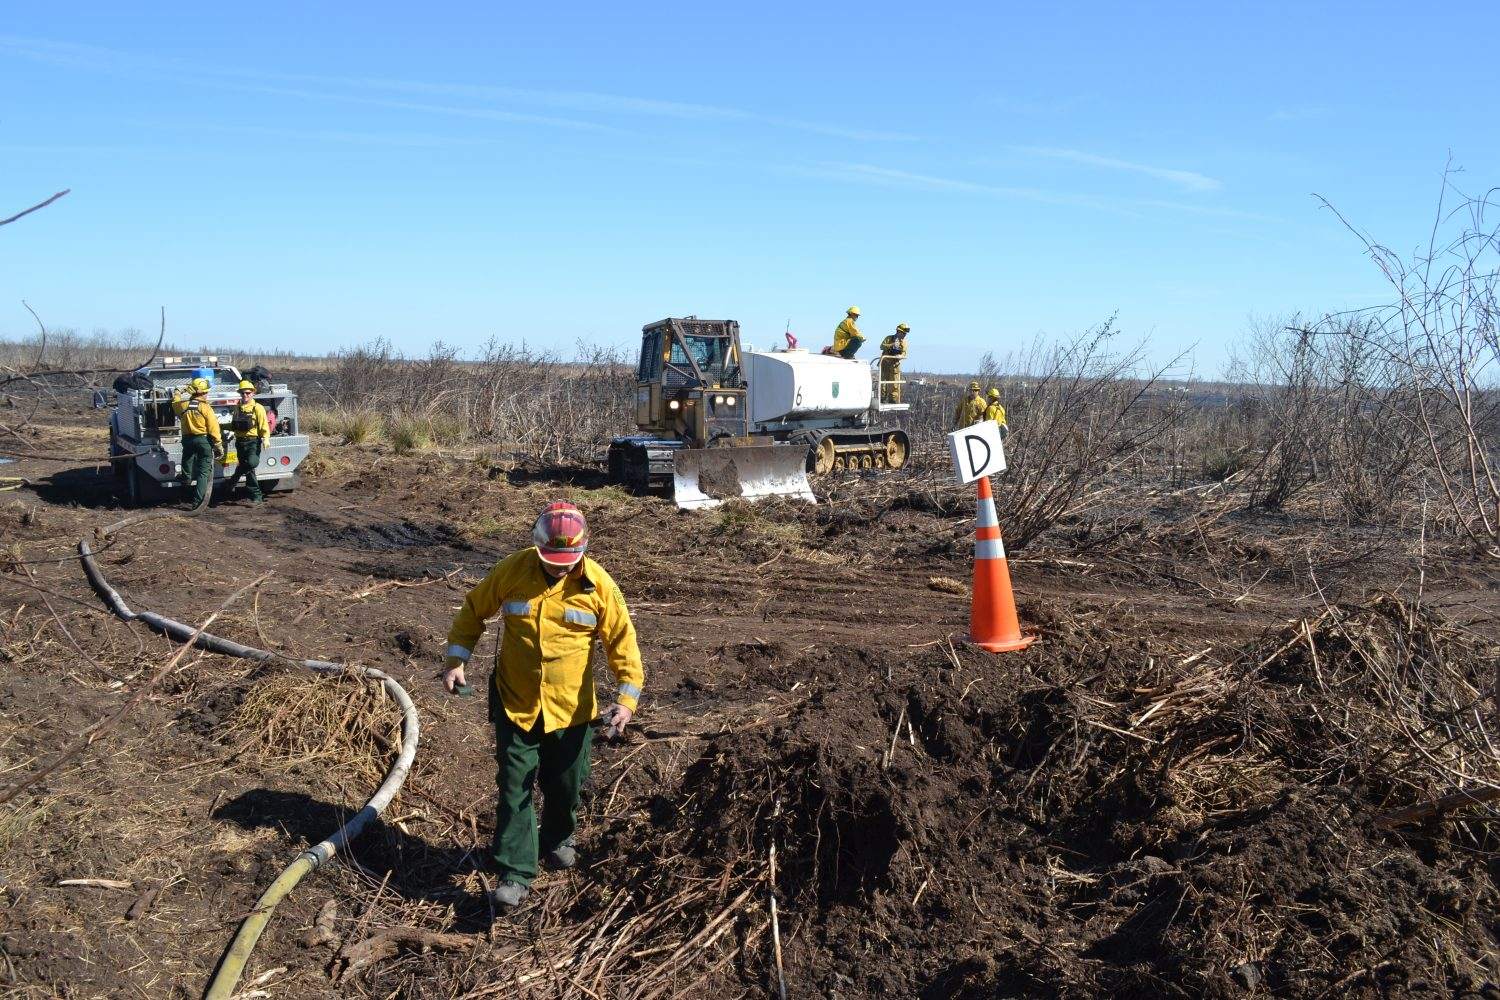 Forestry officials at the fire scene on Paynes Prairie on Monday (photo by Chris Gilmore)